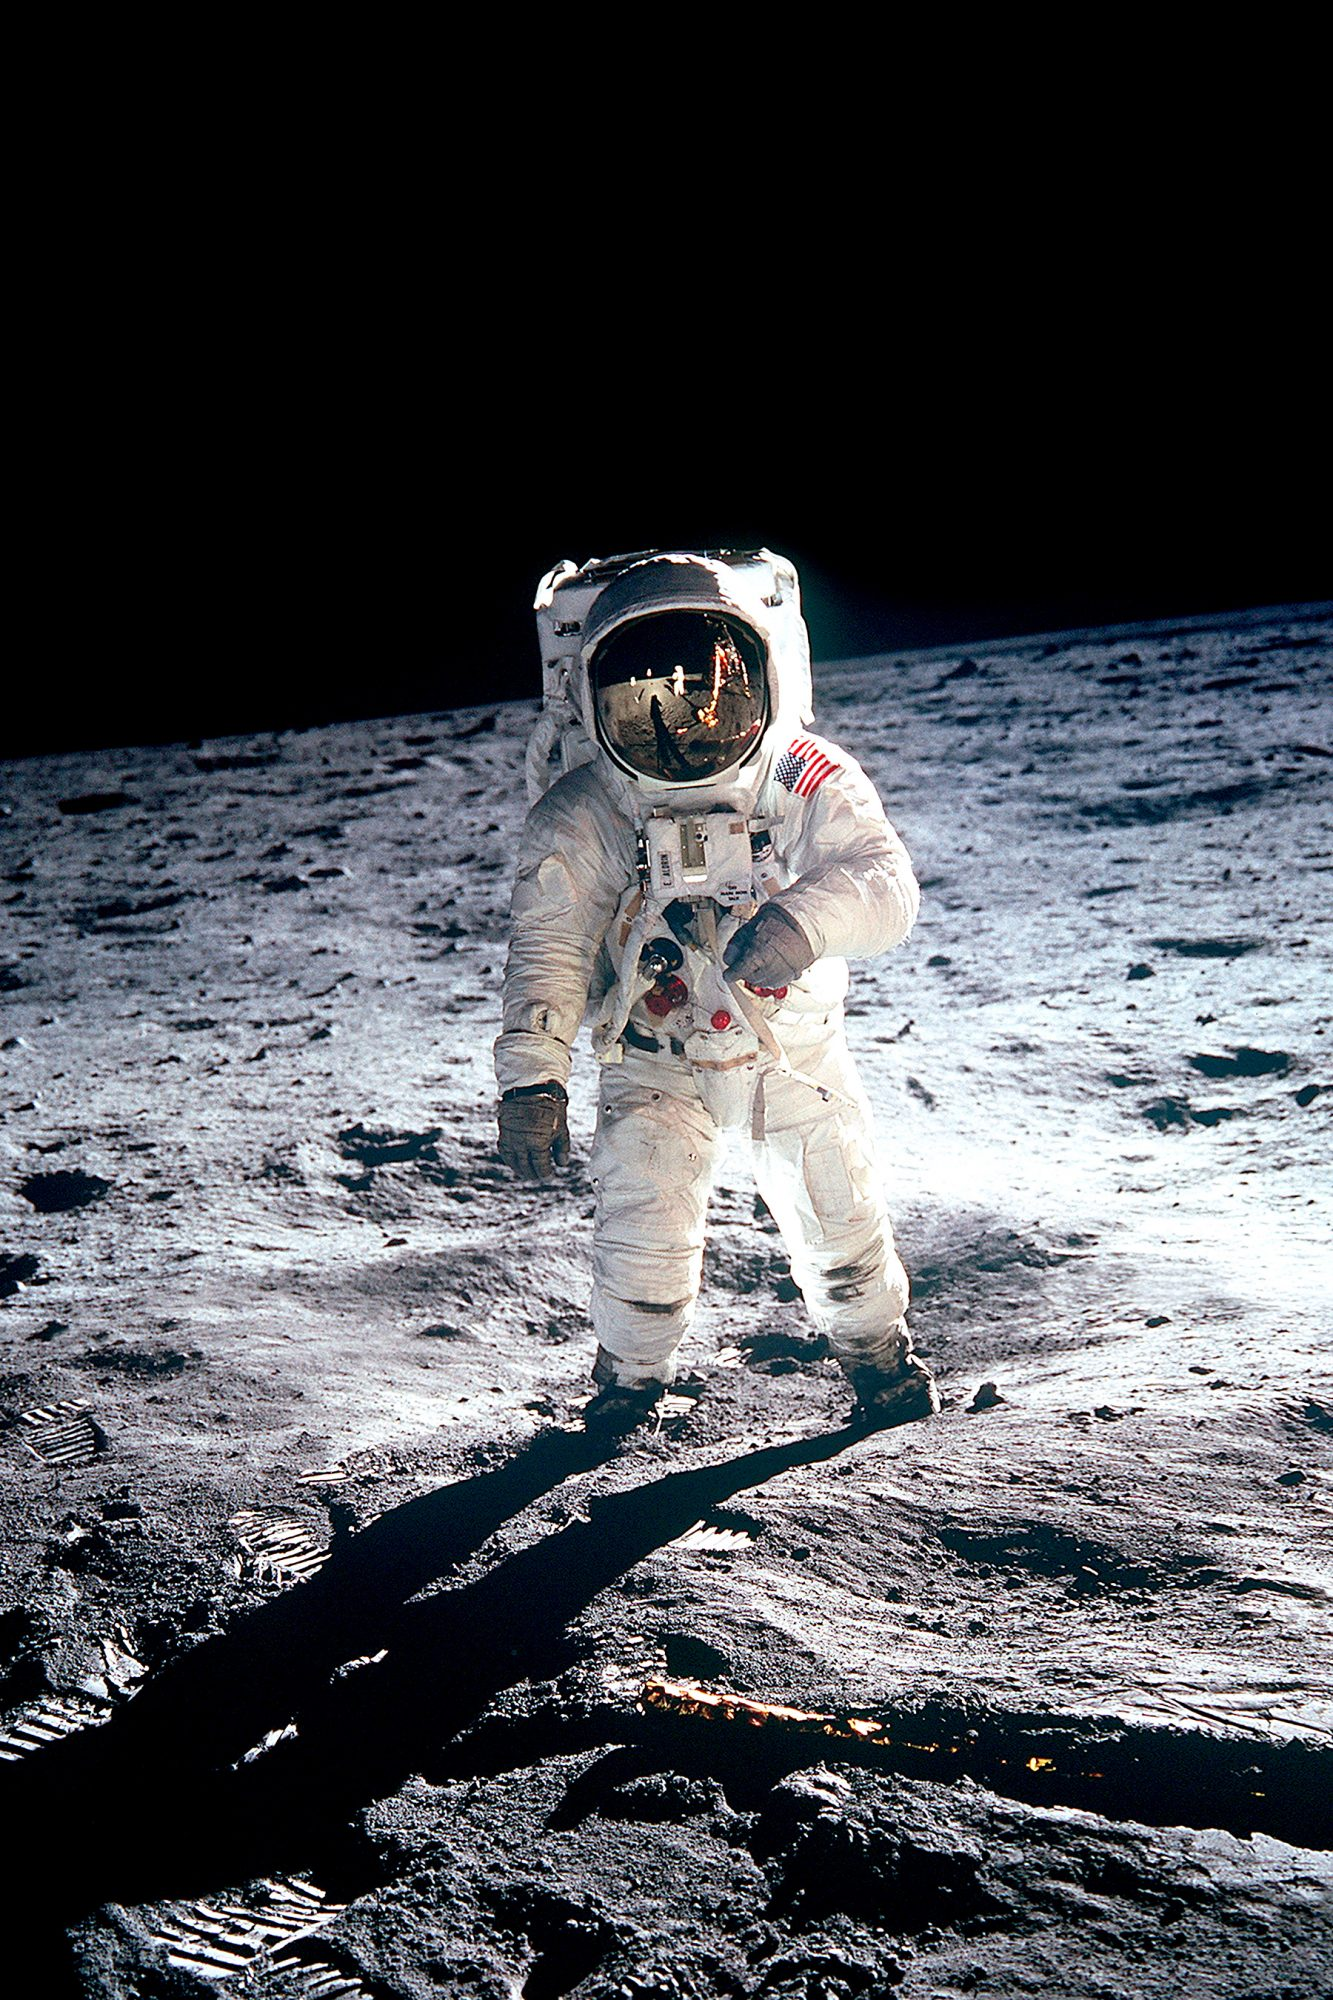 Photograph of Edwin Aldrin taken during the Apollo 11 mission. Neil Armstong reflected in the visor.